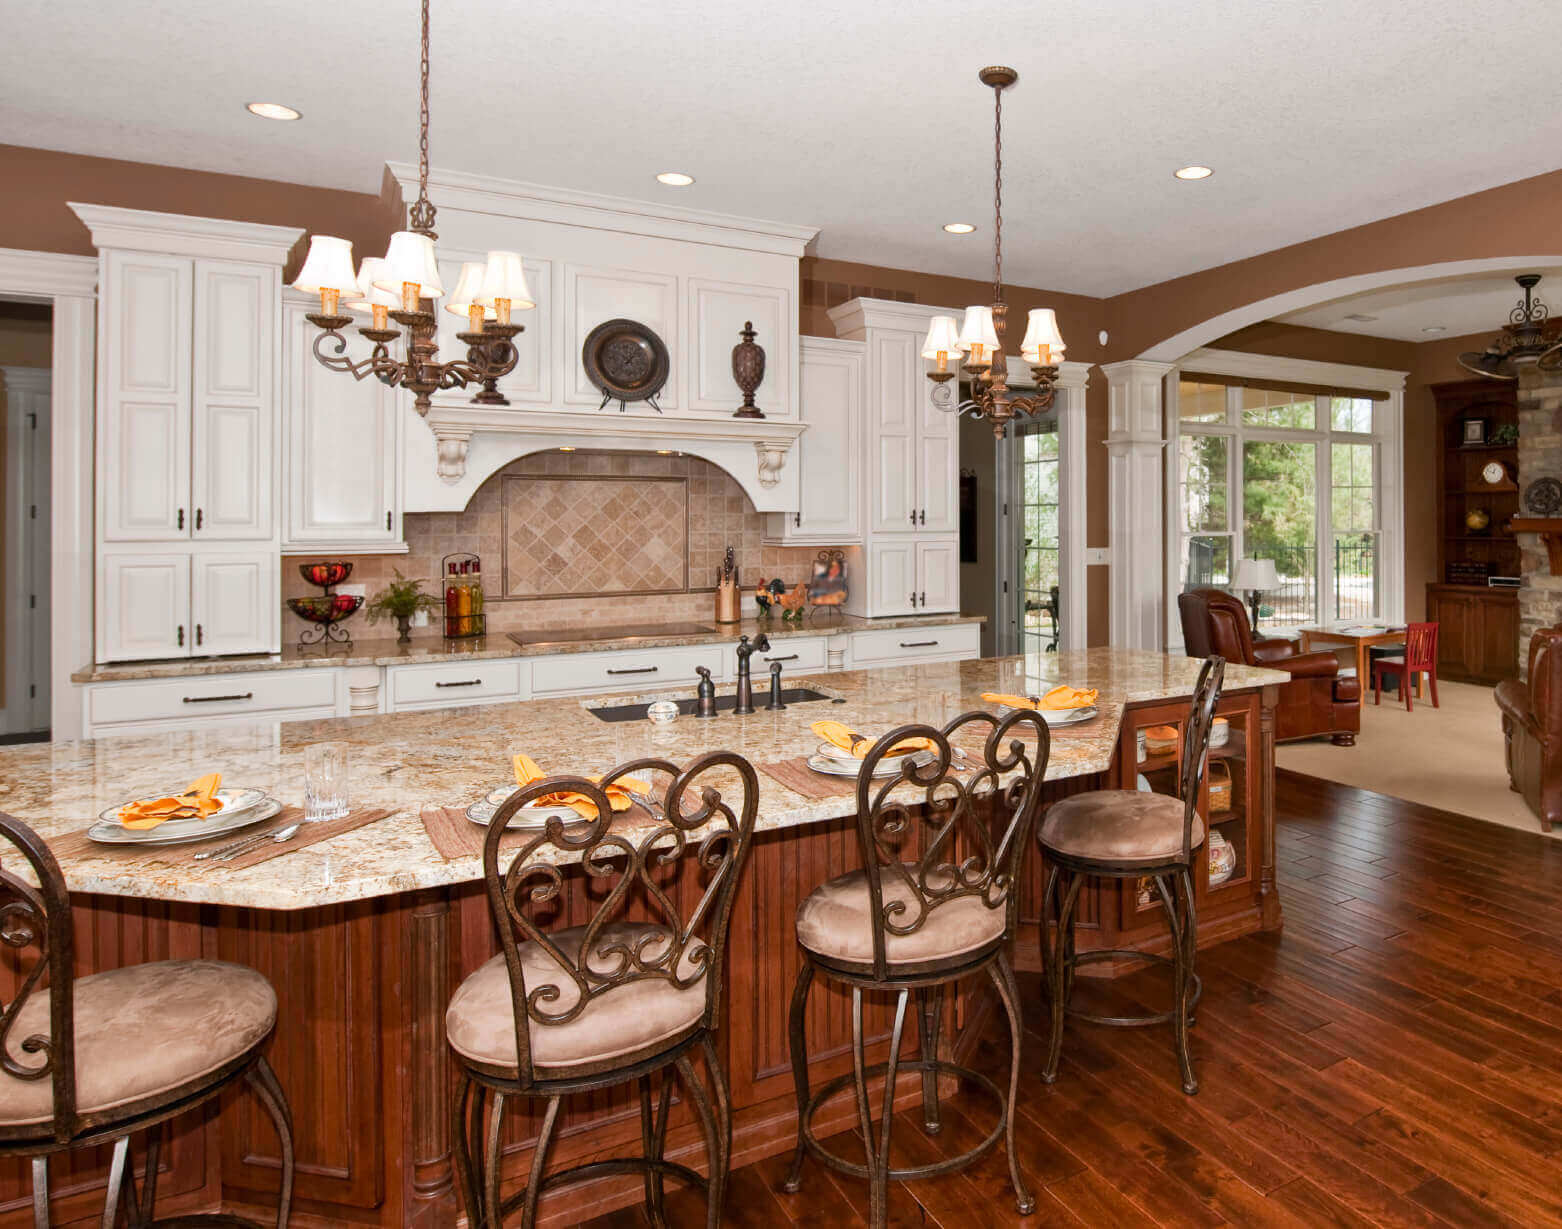 Luxury Kitchens With Islands Luxury Kitchen Islands With Stools